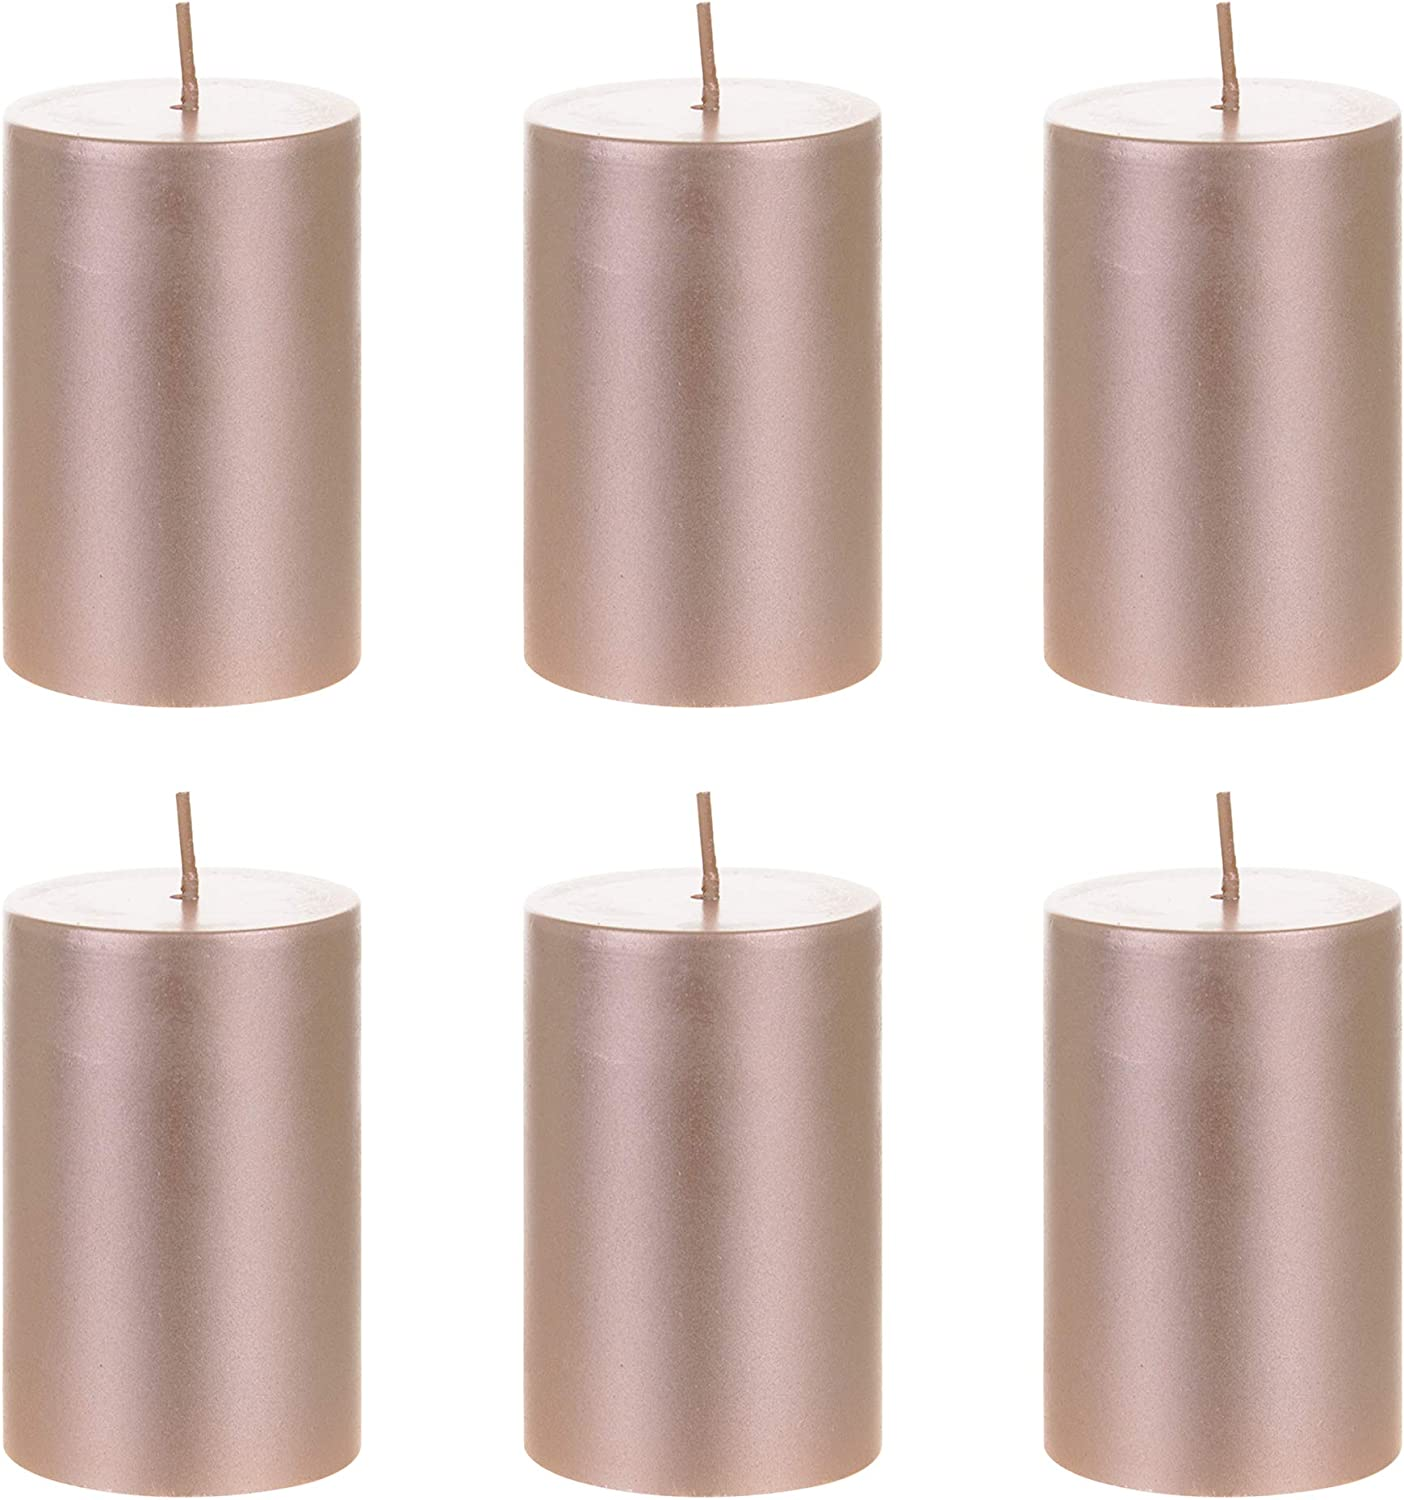 Mega Candles 6 pcs Unscented Rose Gold Round Pillar Candle, Hand Poured Premium Wax Candles 2 Inch x 3 Inch, Home Décor, Wedding Receptions, Baby Showers, Birthdays, Celebrations, Party Favors & More